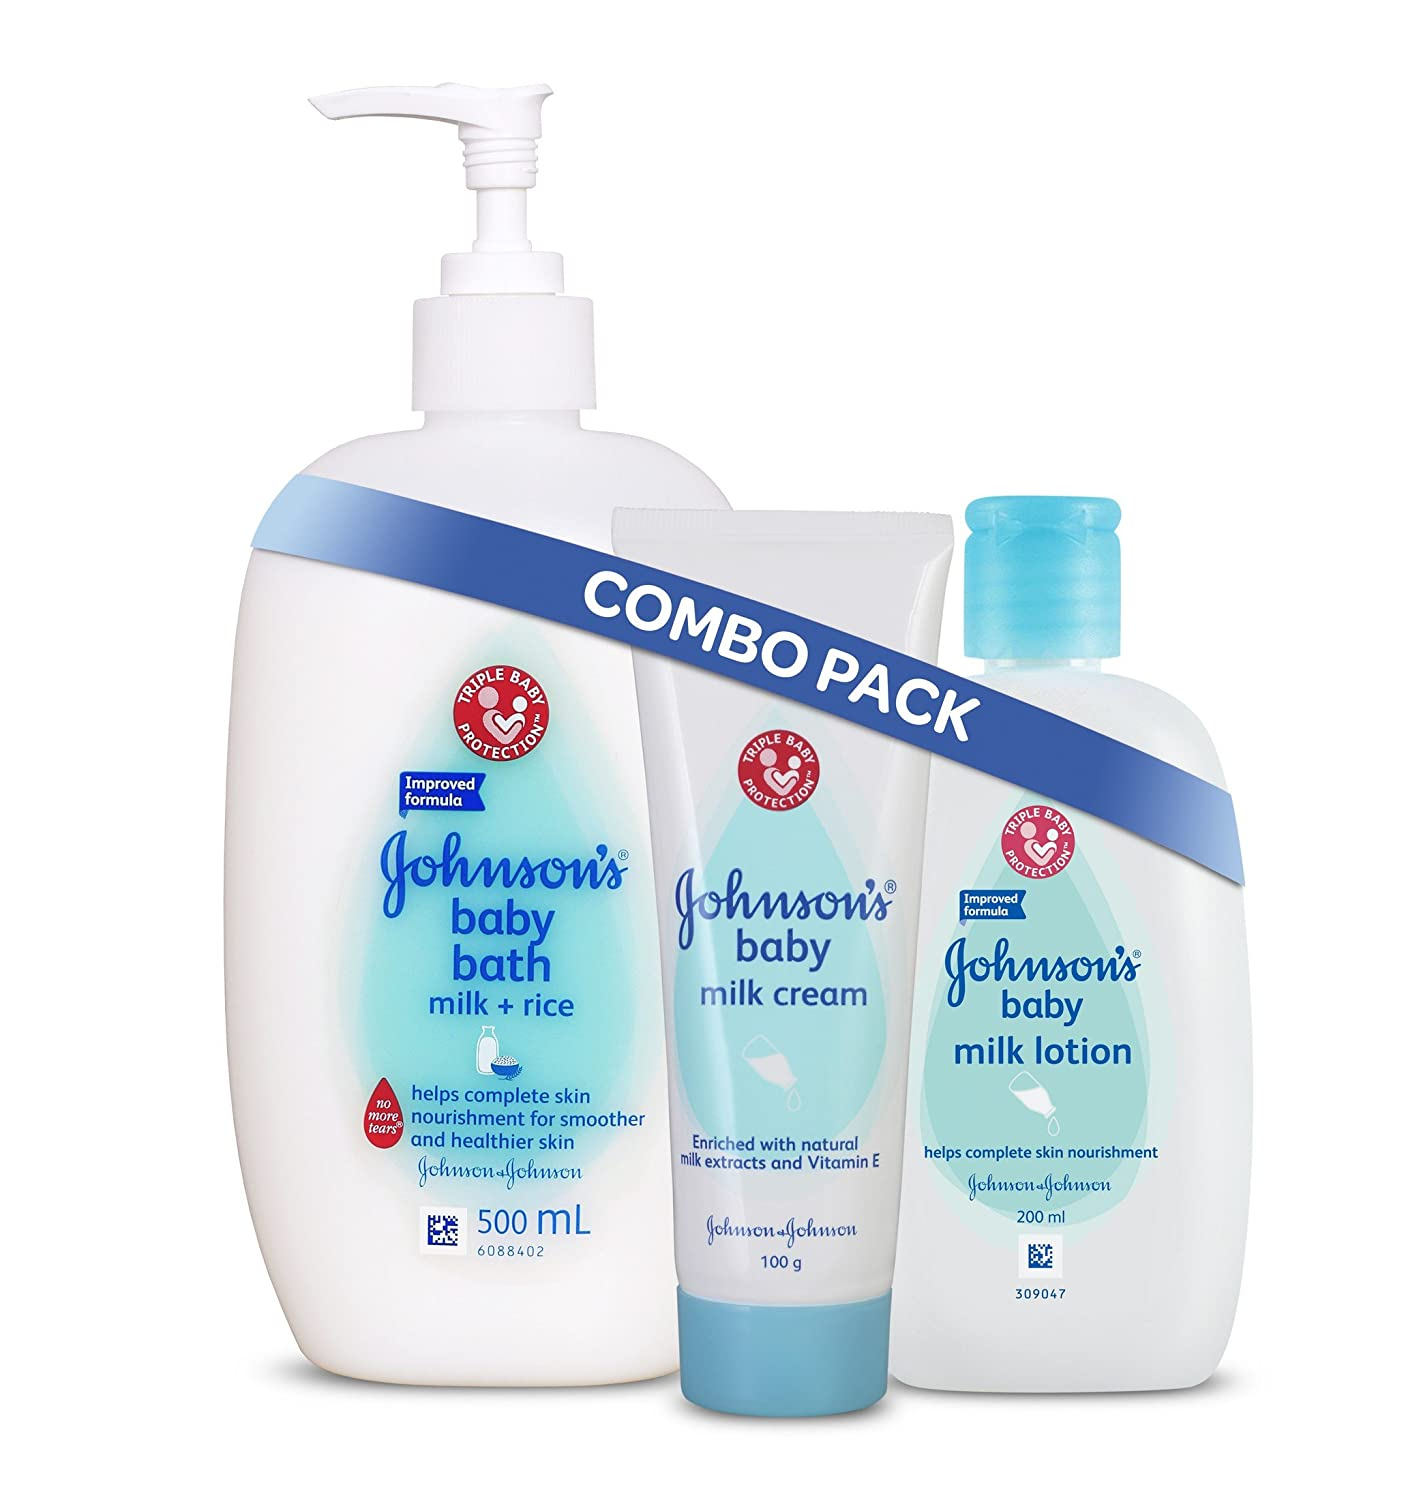 Buy Johnson\'s Baby Milk & Rice Bath, 500ml Online at Low Prices in ...